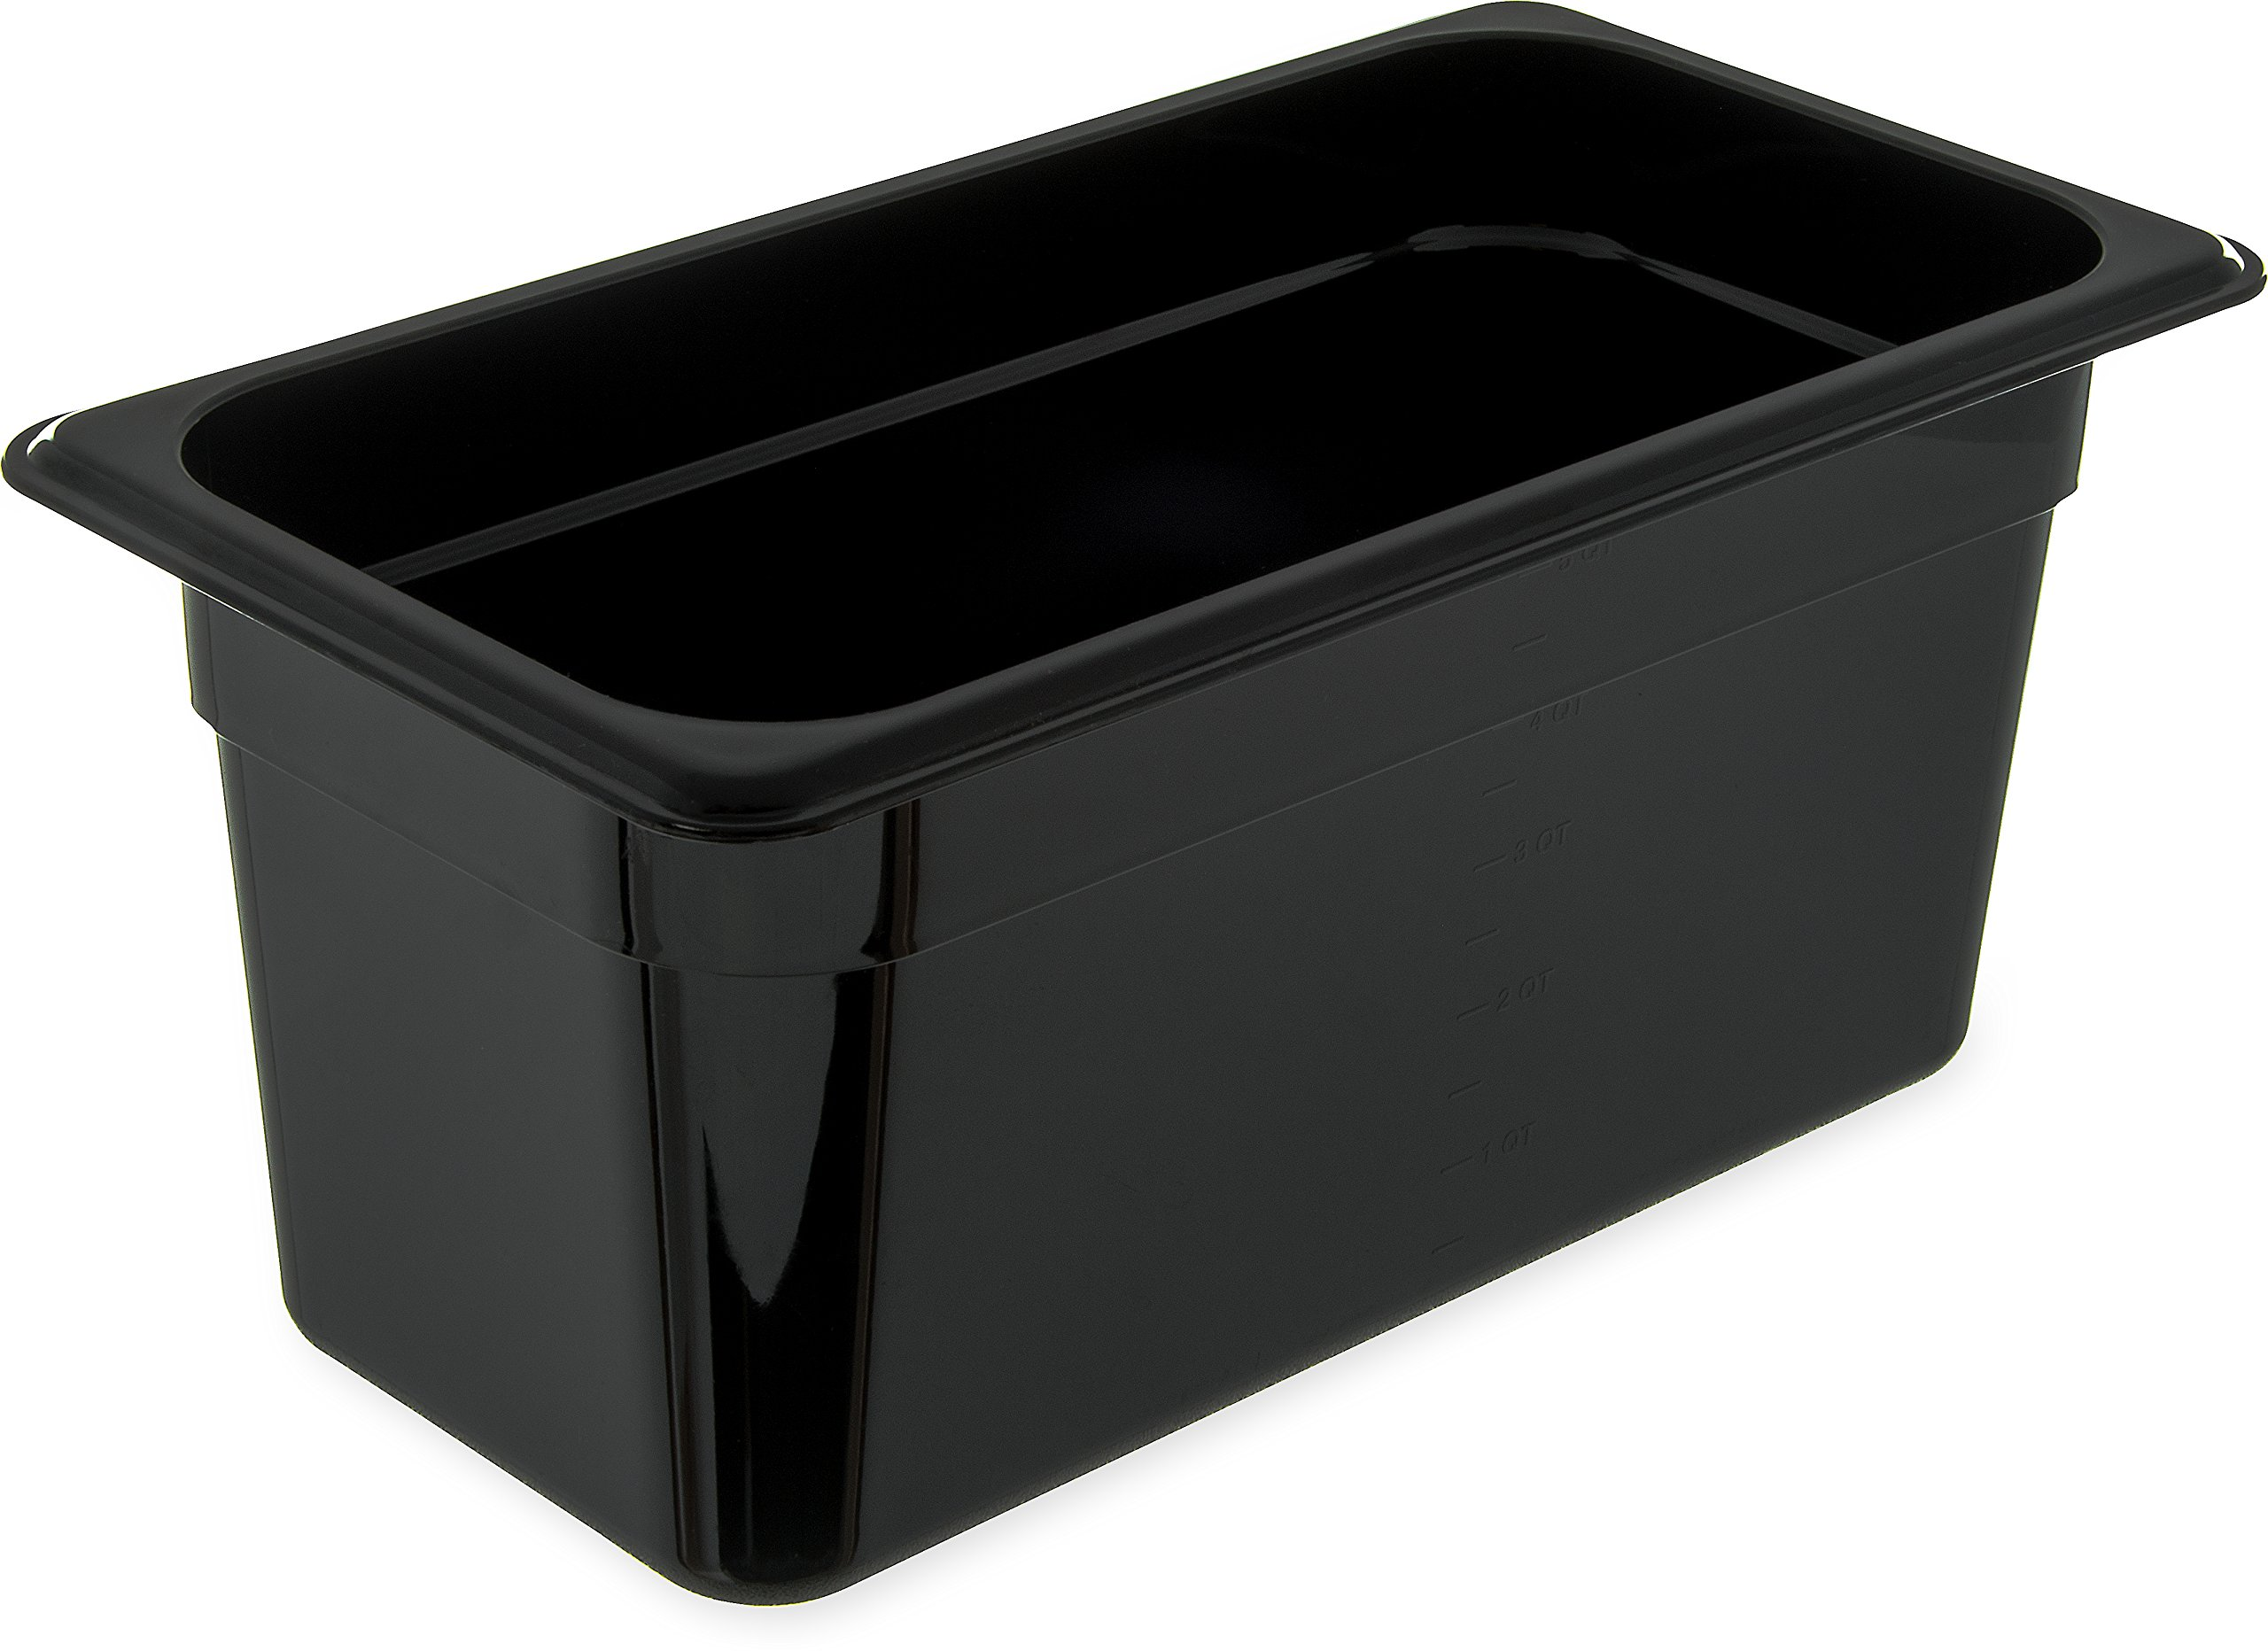 Carlisle 3066203 StorPlus Third Size Food Pan, Polycarbonate, 6'' Deep, Black (Pack of 6)